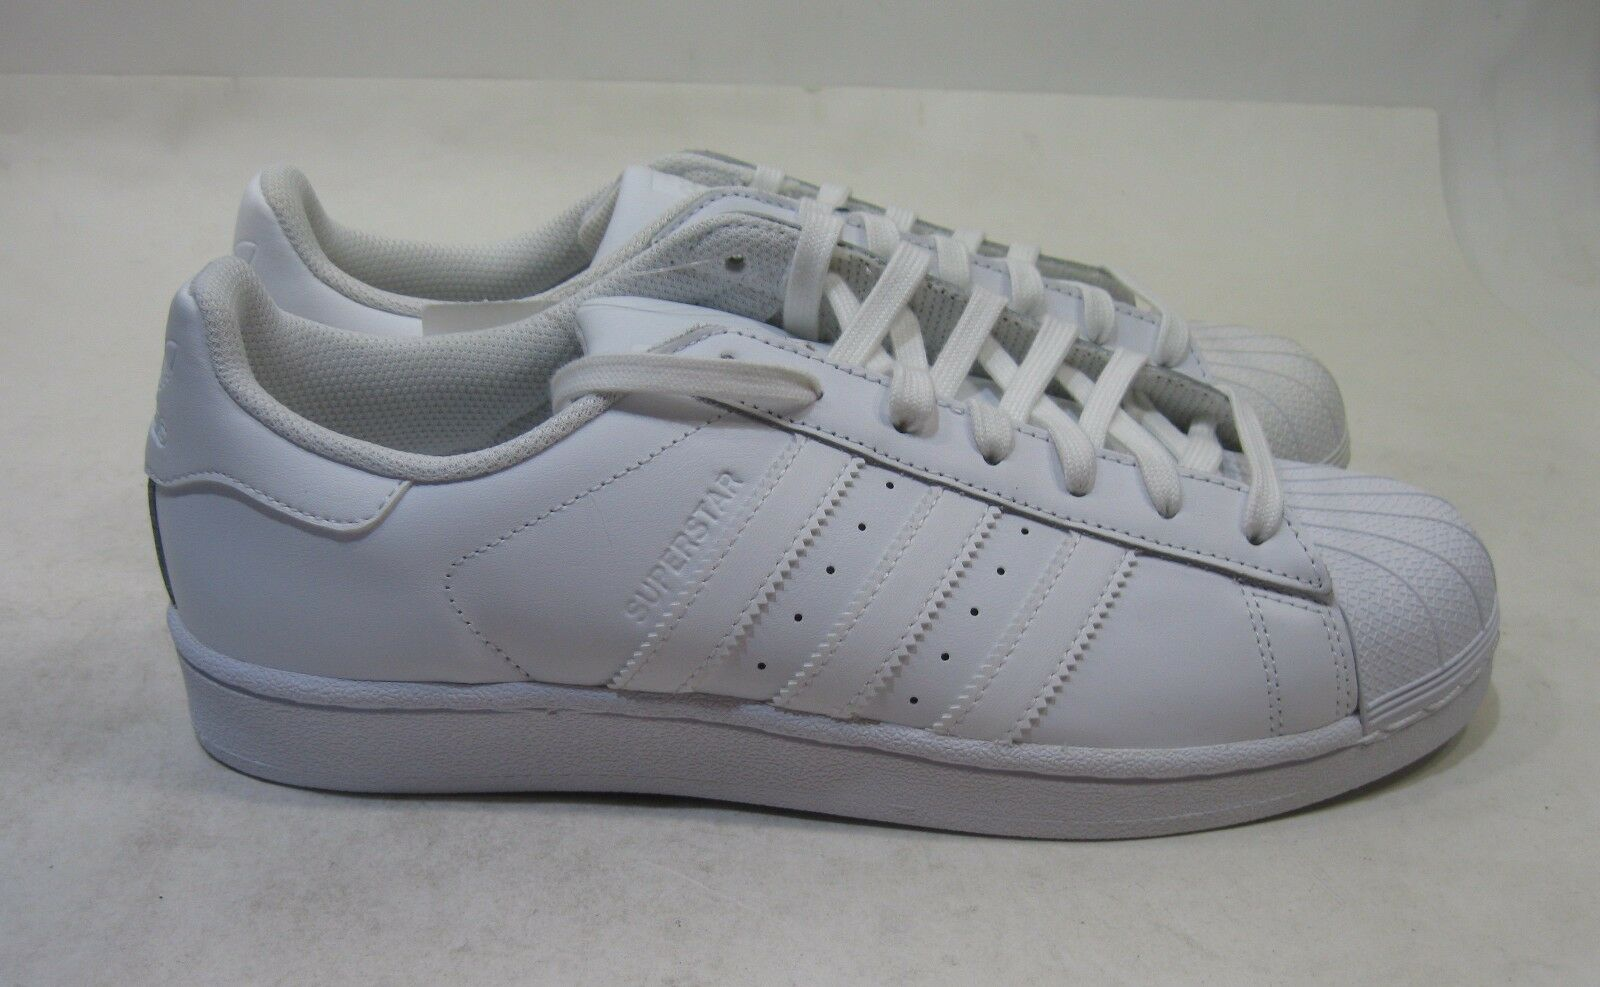 Adidas Superstar Foundation homme B27136 blanc Leather Shell Toe chaussures